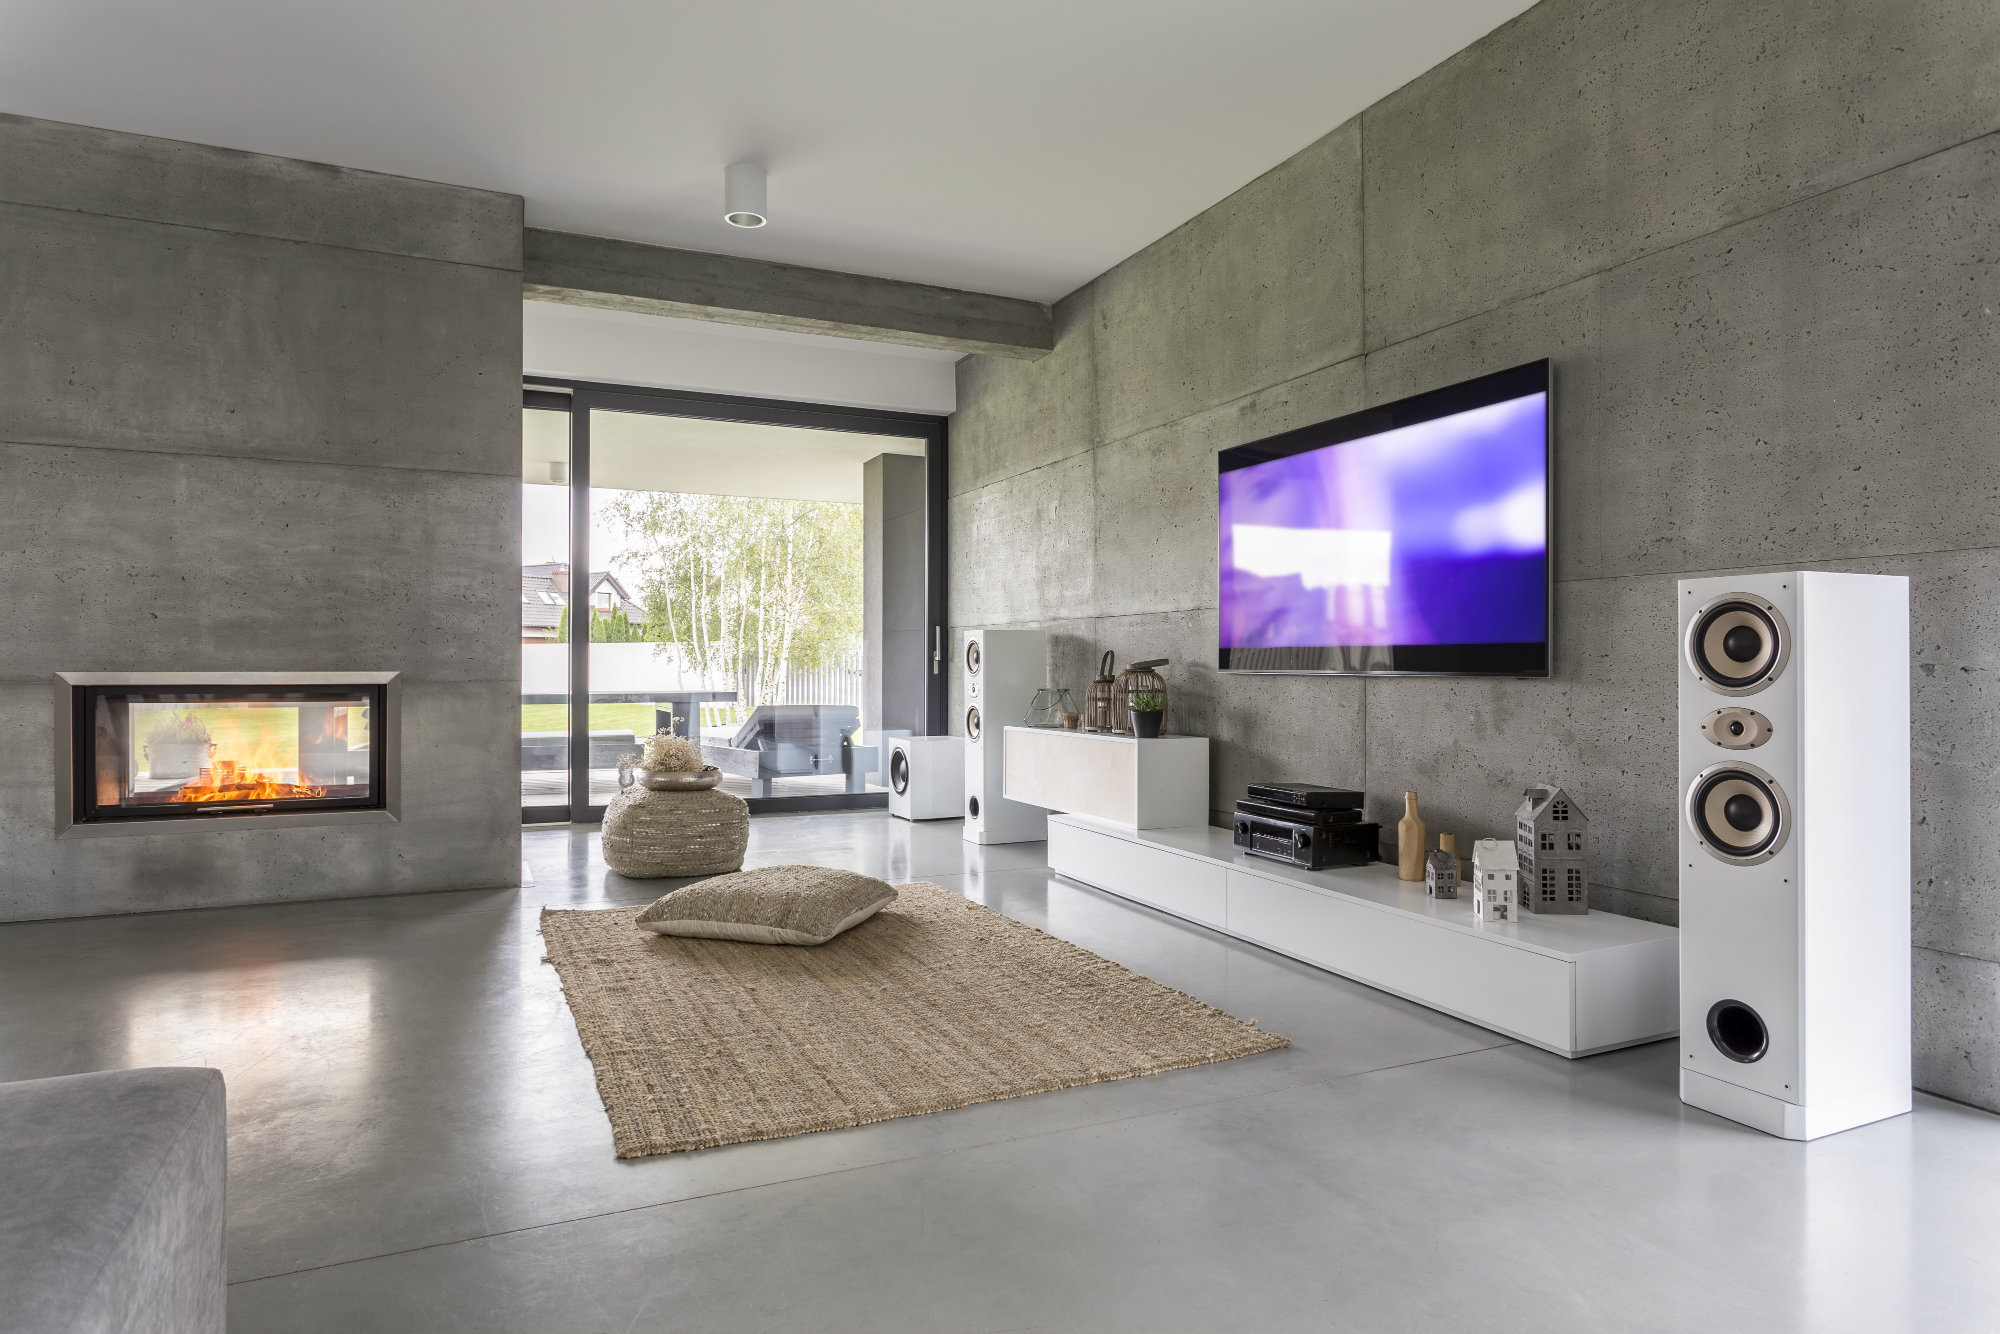 Captivating Why You Should Take A Hard Look At Concrete Floors, Fixtures And More For  2018 Interiors| Concrete Construction Magazine | Design, Residential  Projects, ...